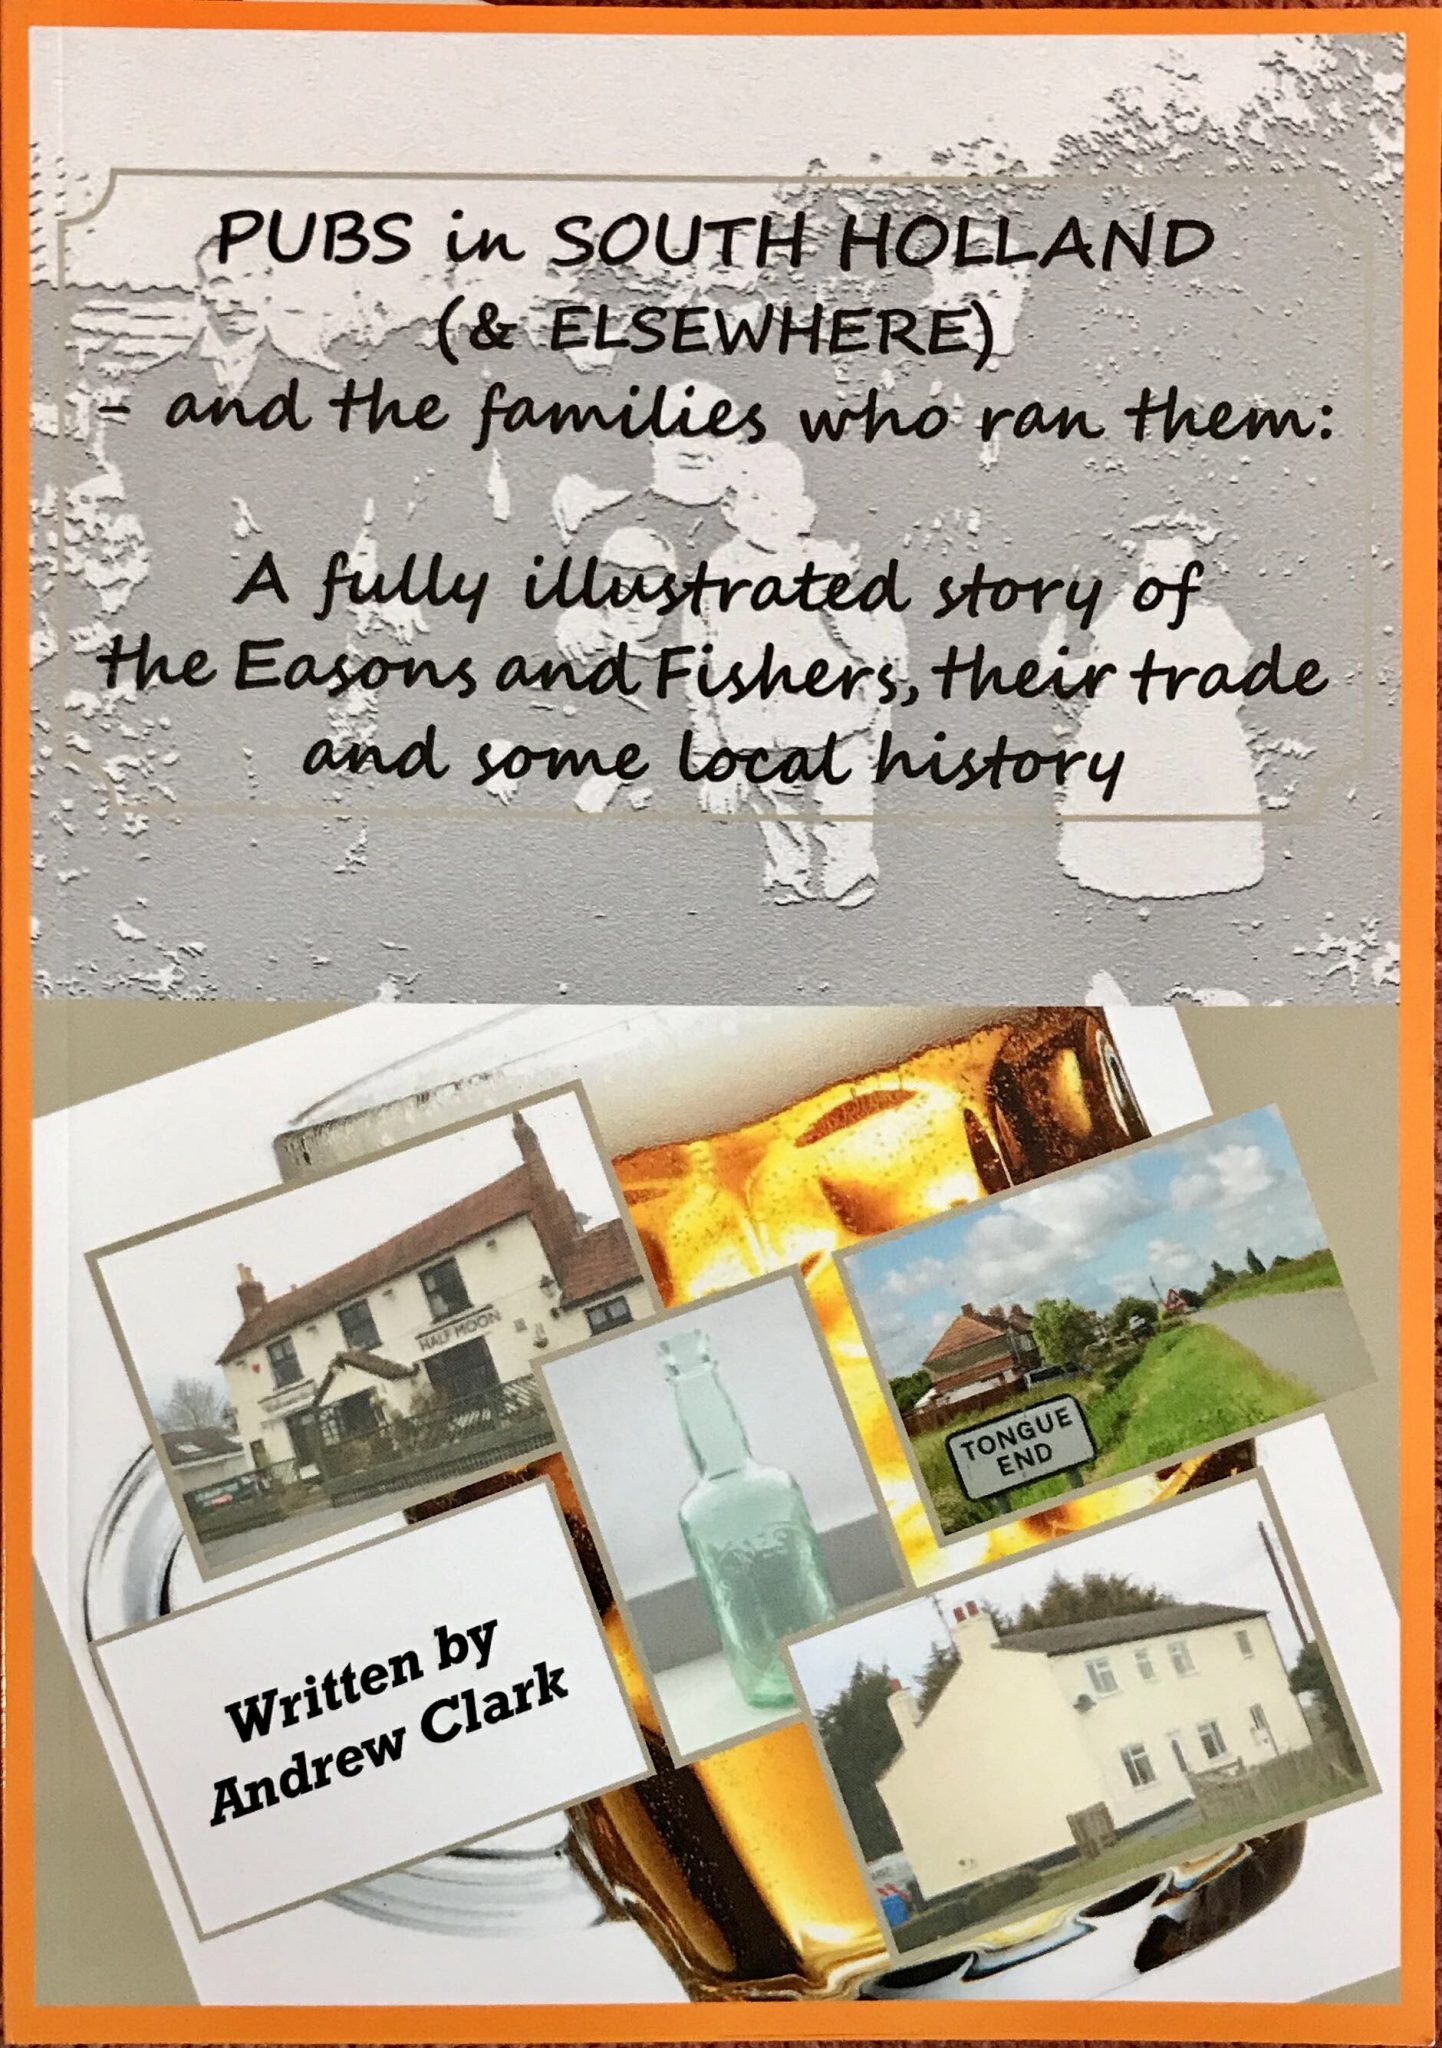 New Book of Pubs in South Holland and Elsewhere